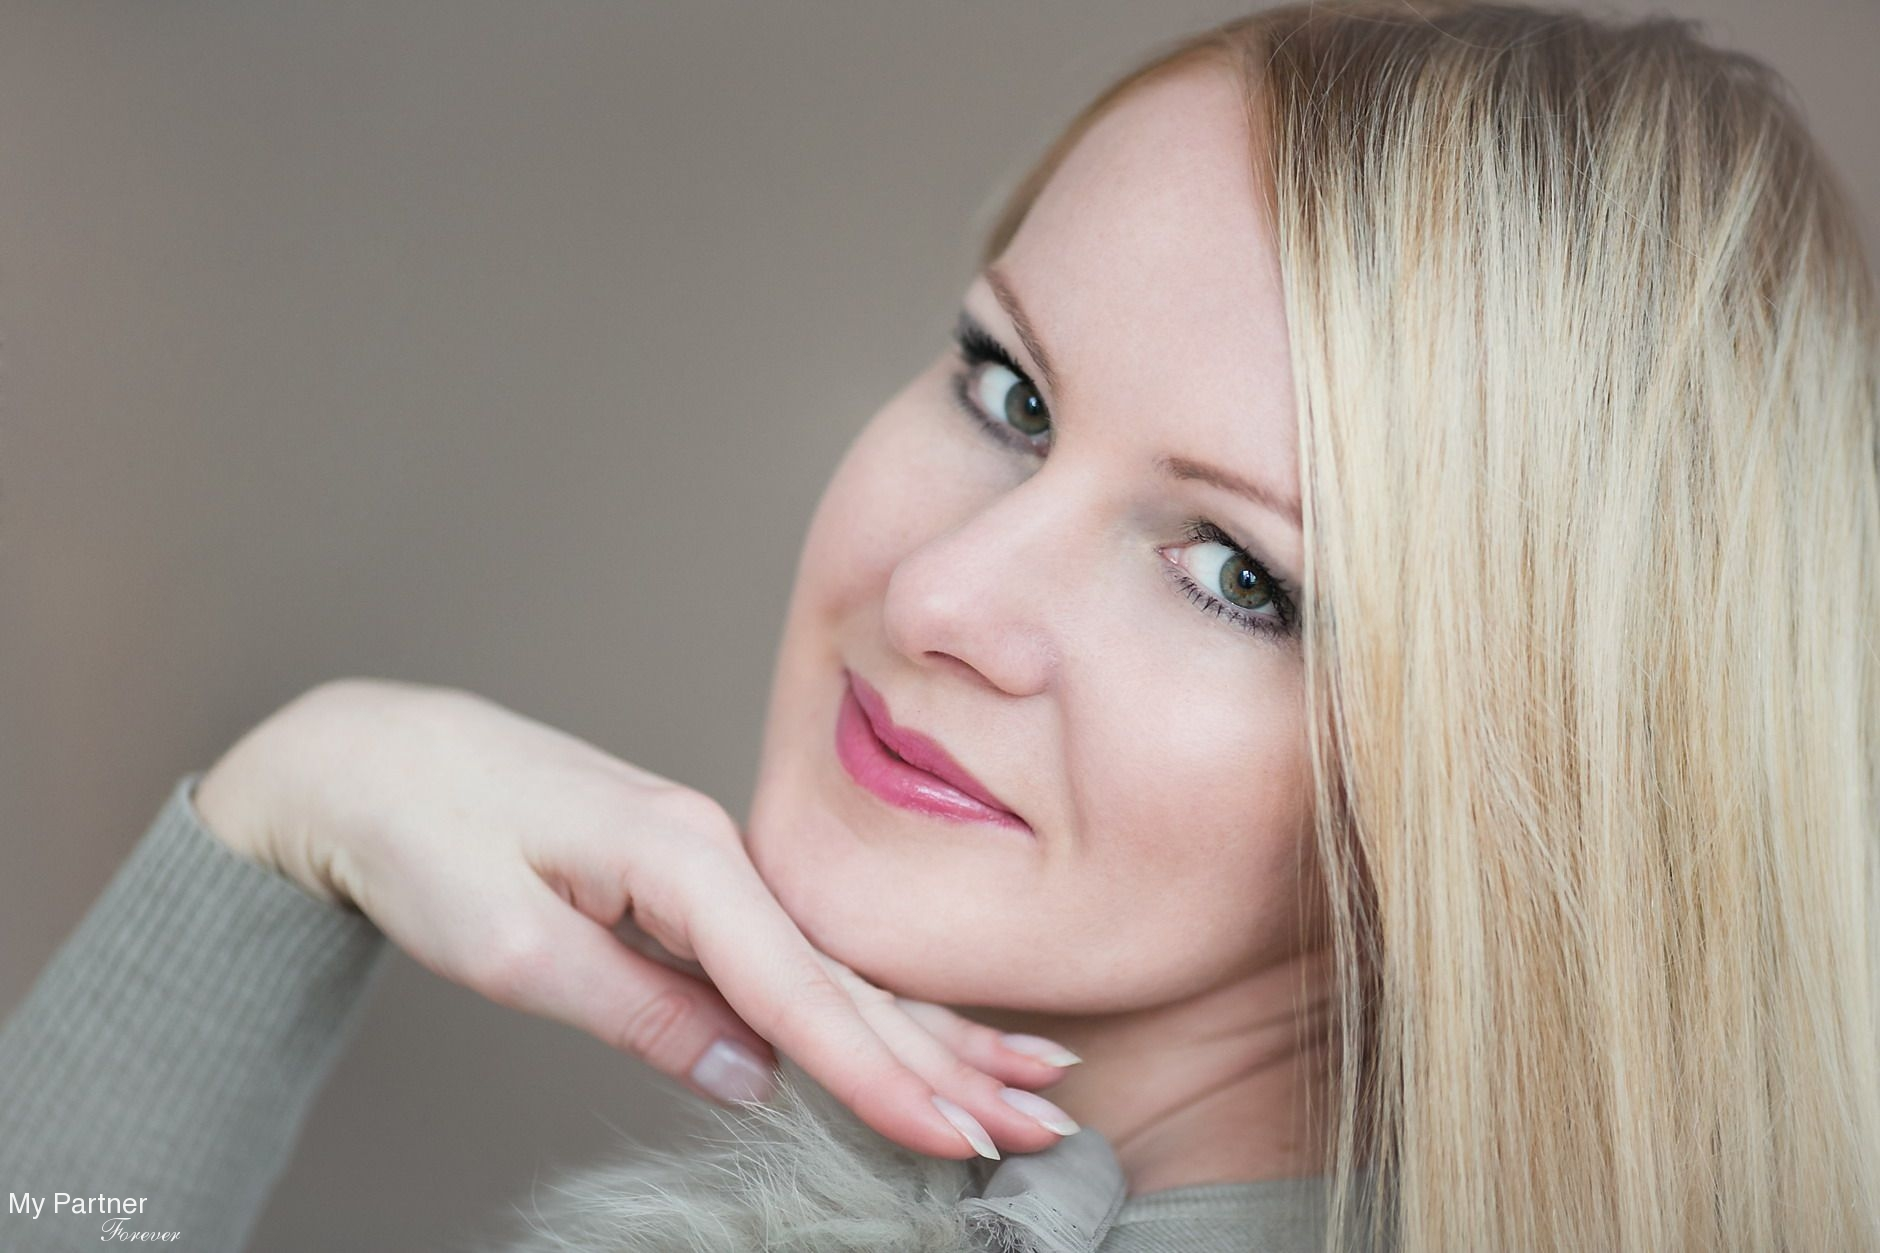 Charming Woman from Belarus - Nataliya from Grodno, Belarus